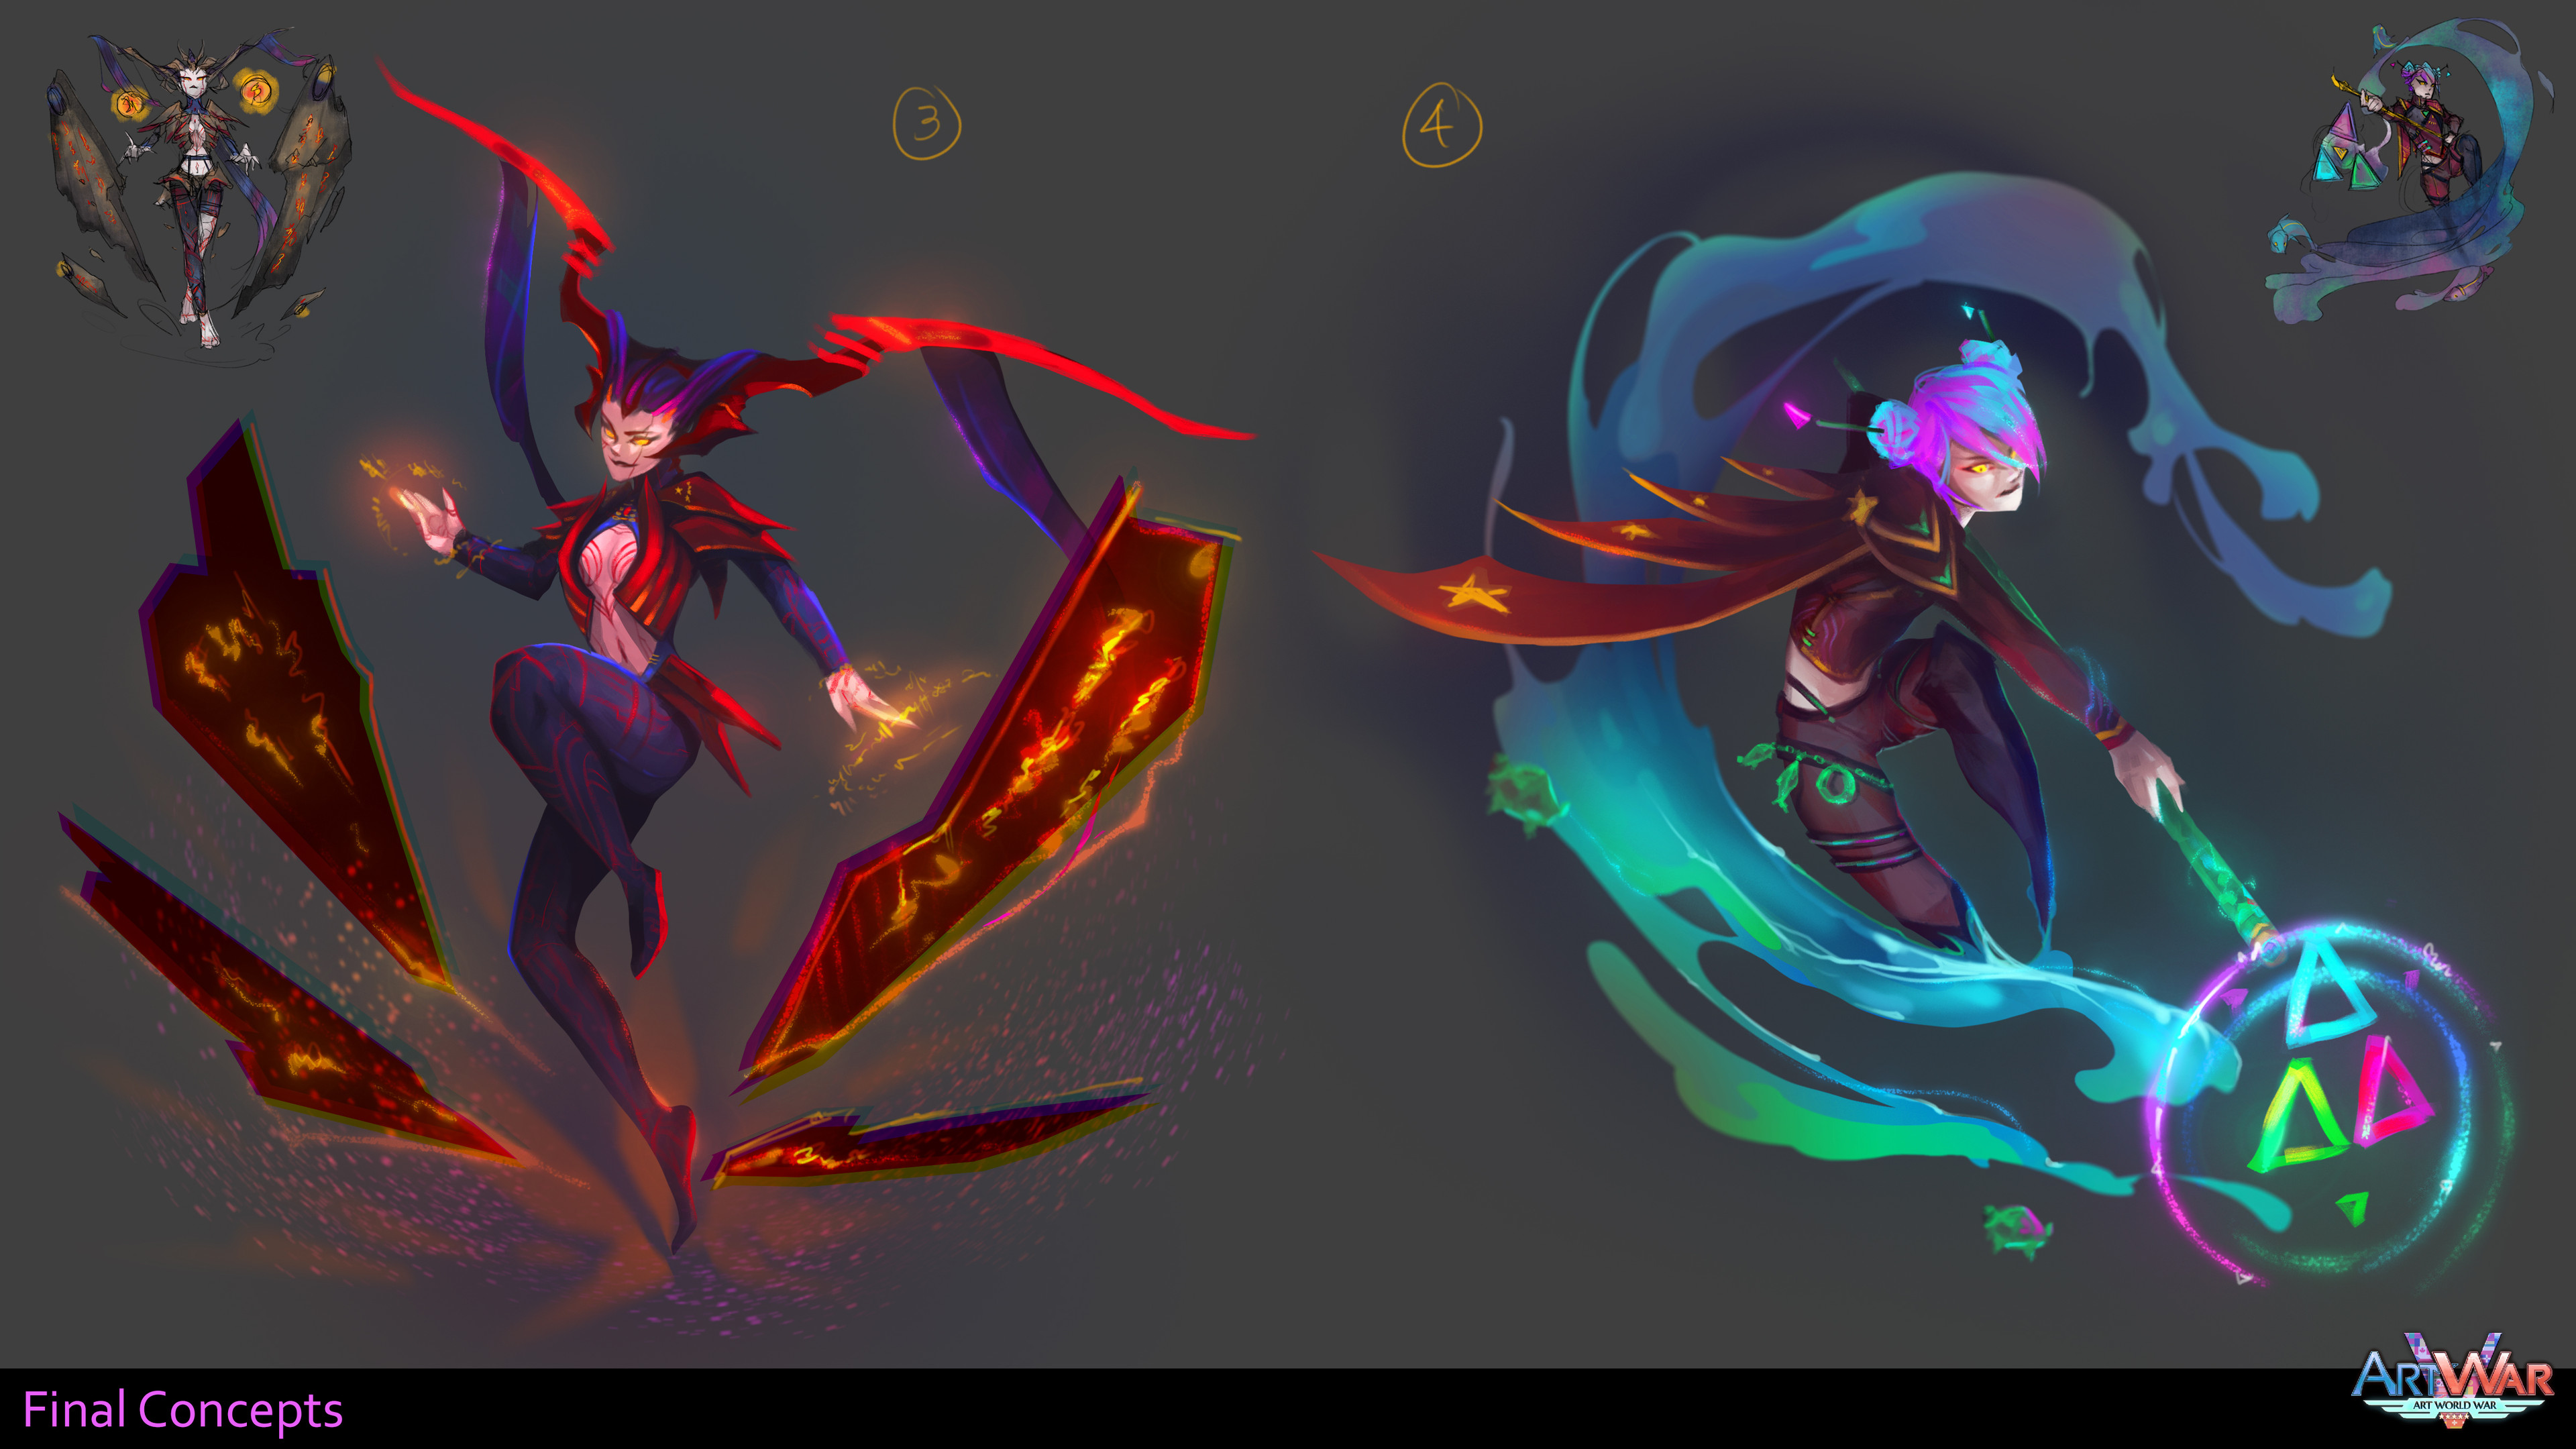 Refined Concepts 2